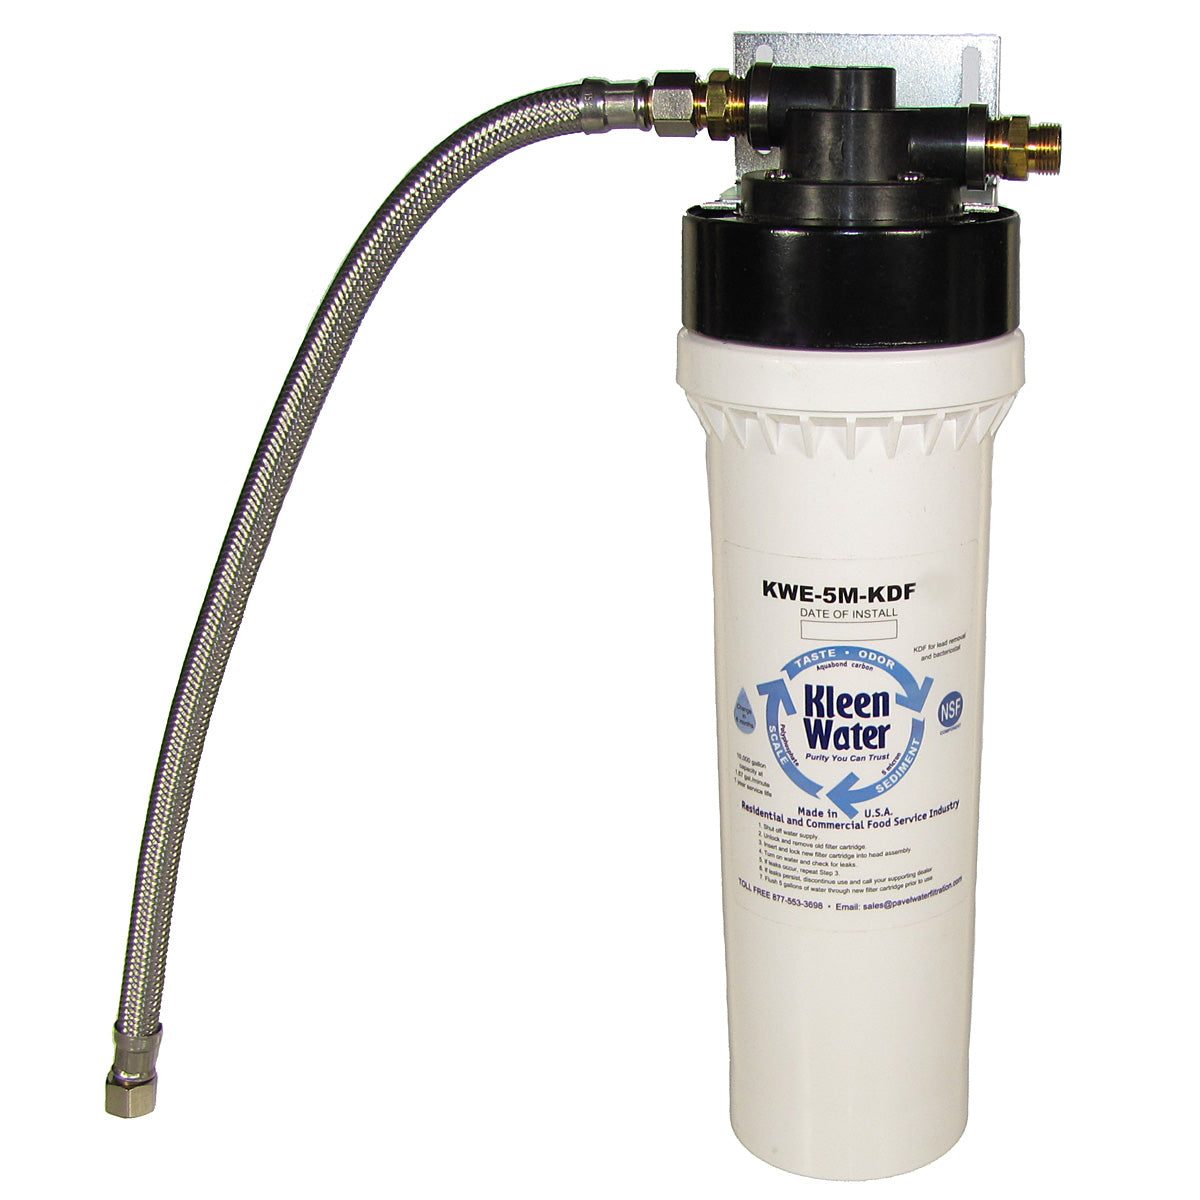 KleenWater KWE-1M-KDF-DWS Under Sink Drinking Water Filter System